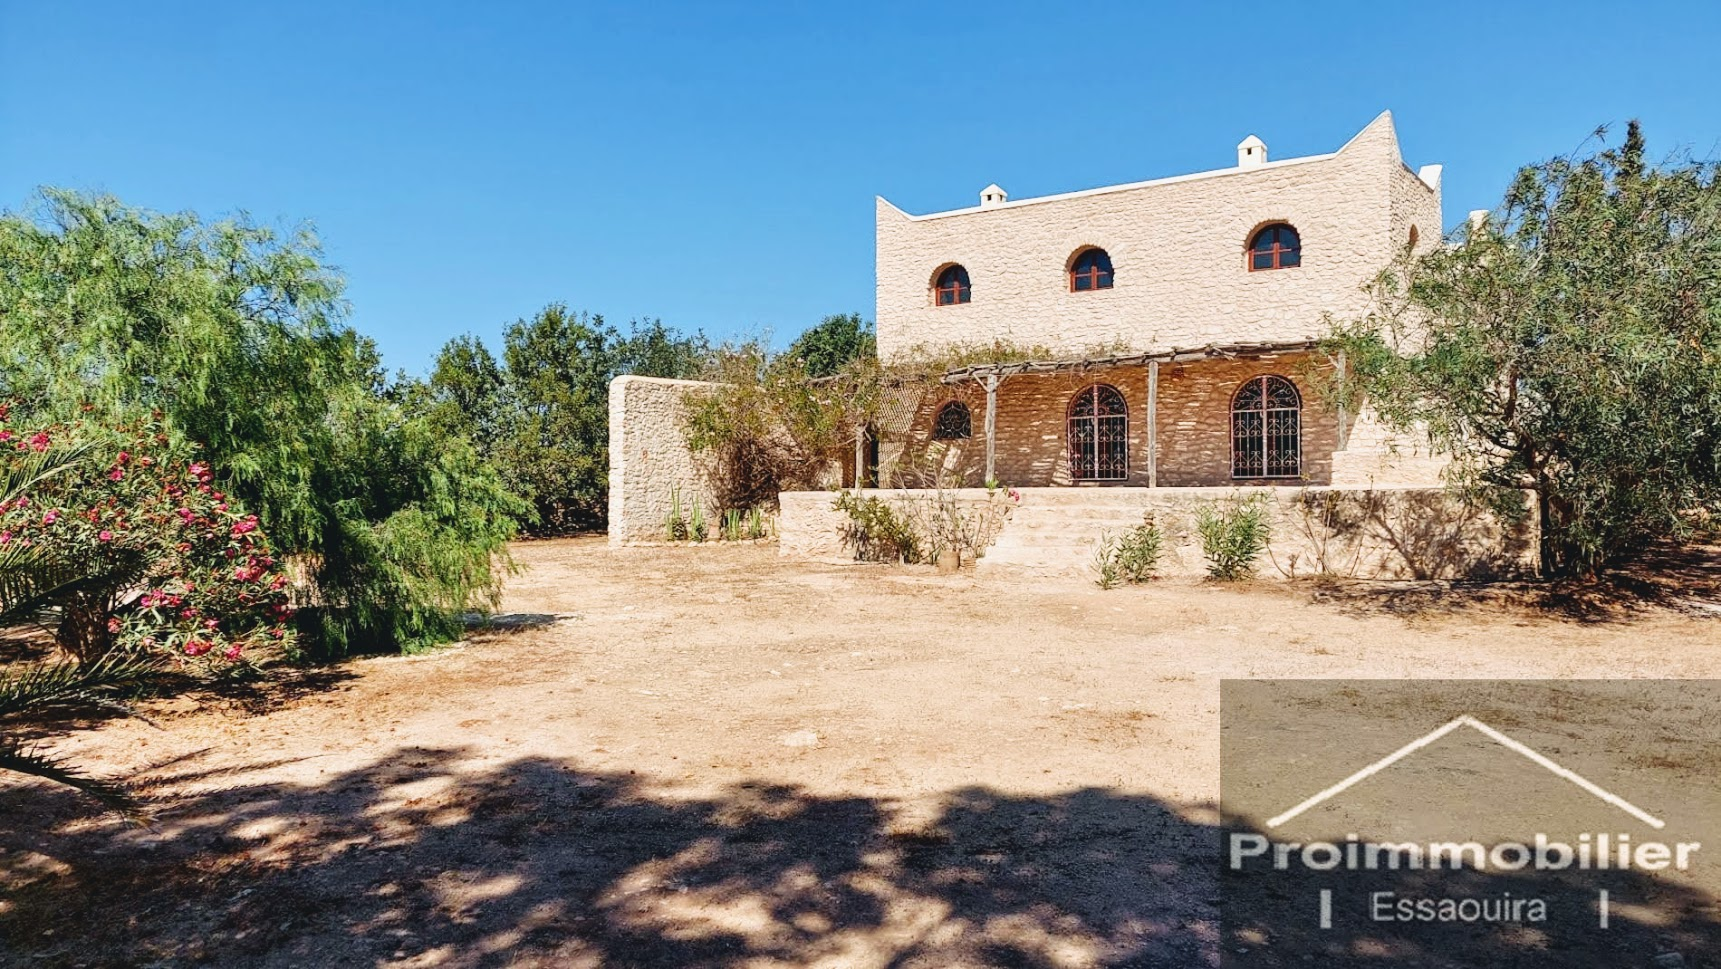 21-09-01-VM  Beautiful Country House for sale in Essaouira 280m² Garden 3099 m² Provisional avna in progress